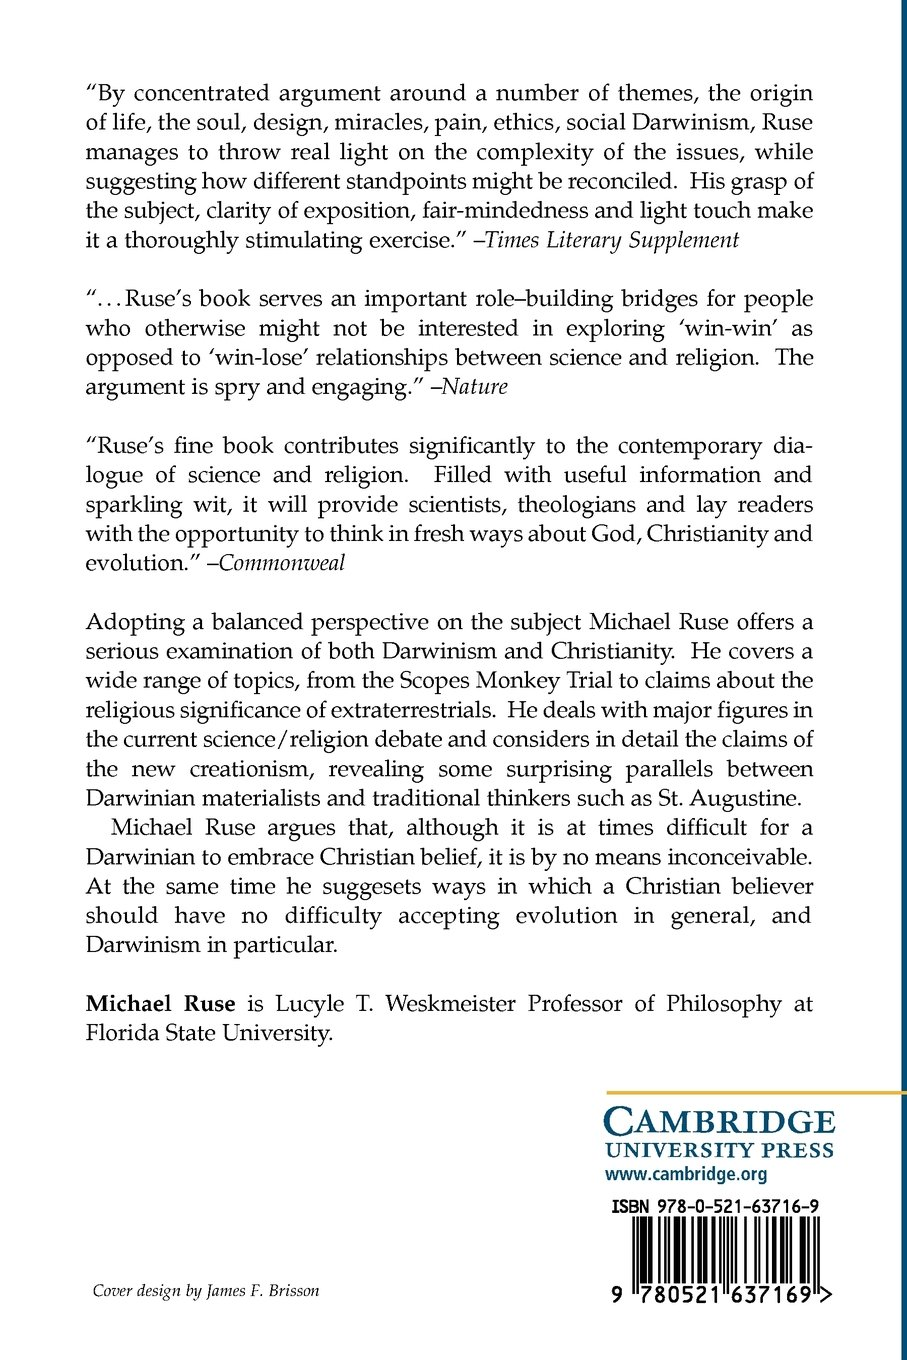 can a darwinian be a christian the relationship between science the relationship between science and religion amazon co uk michael ruse 9780521637169 books